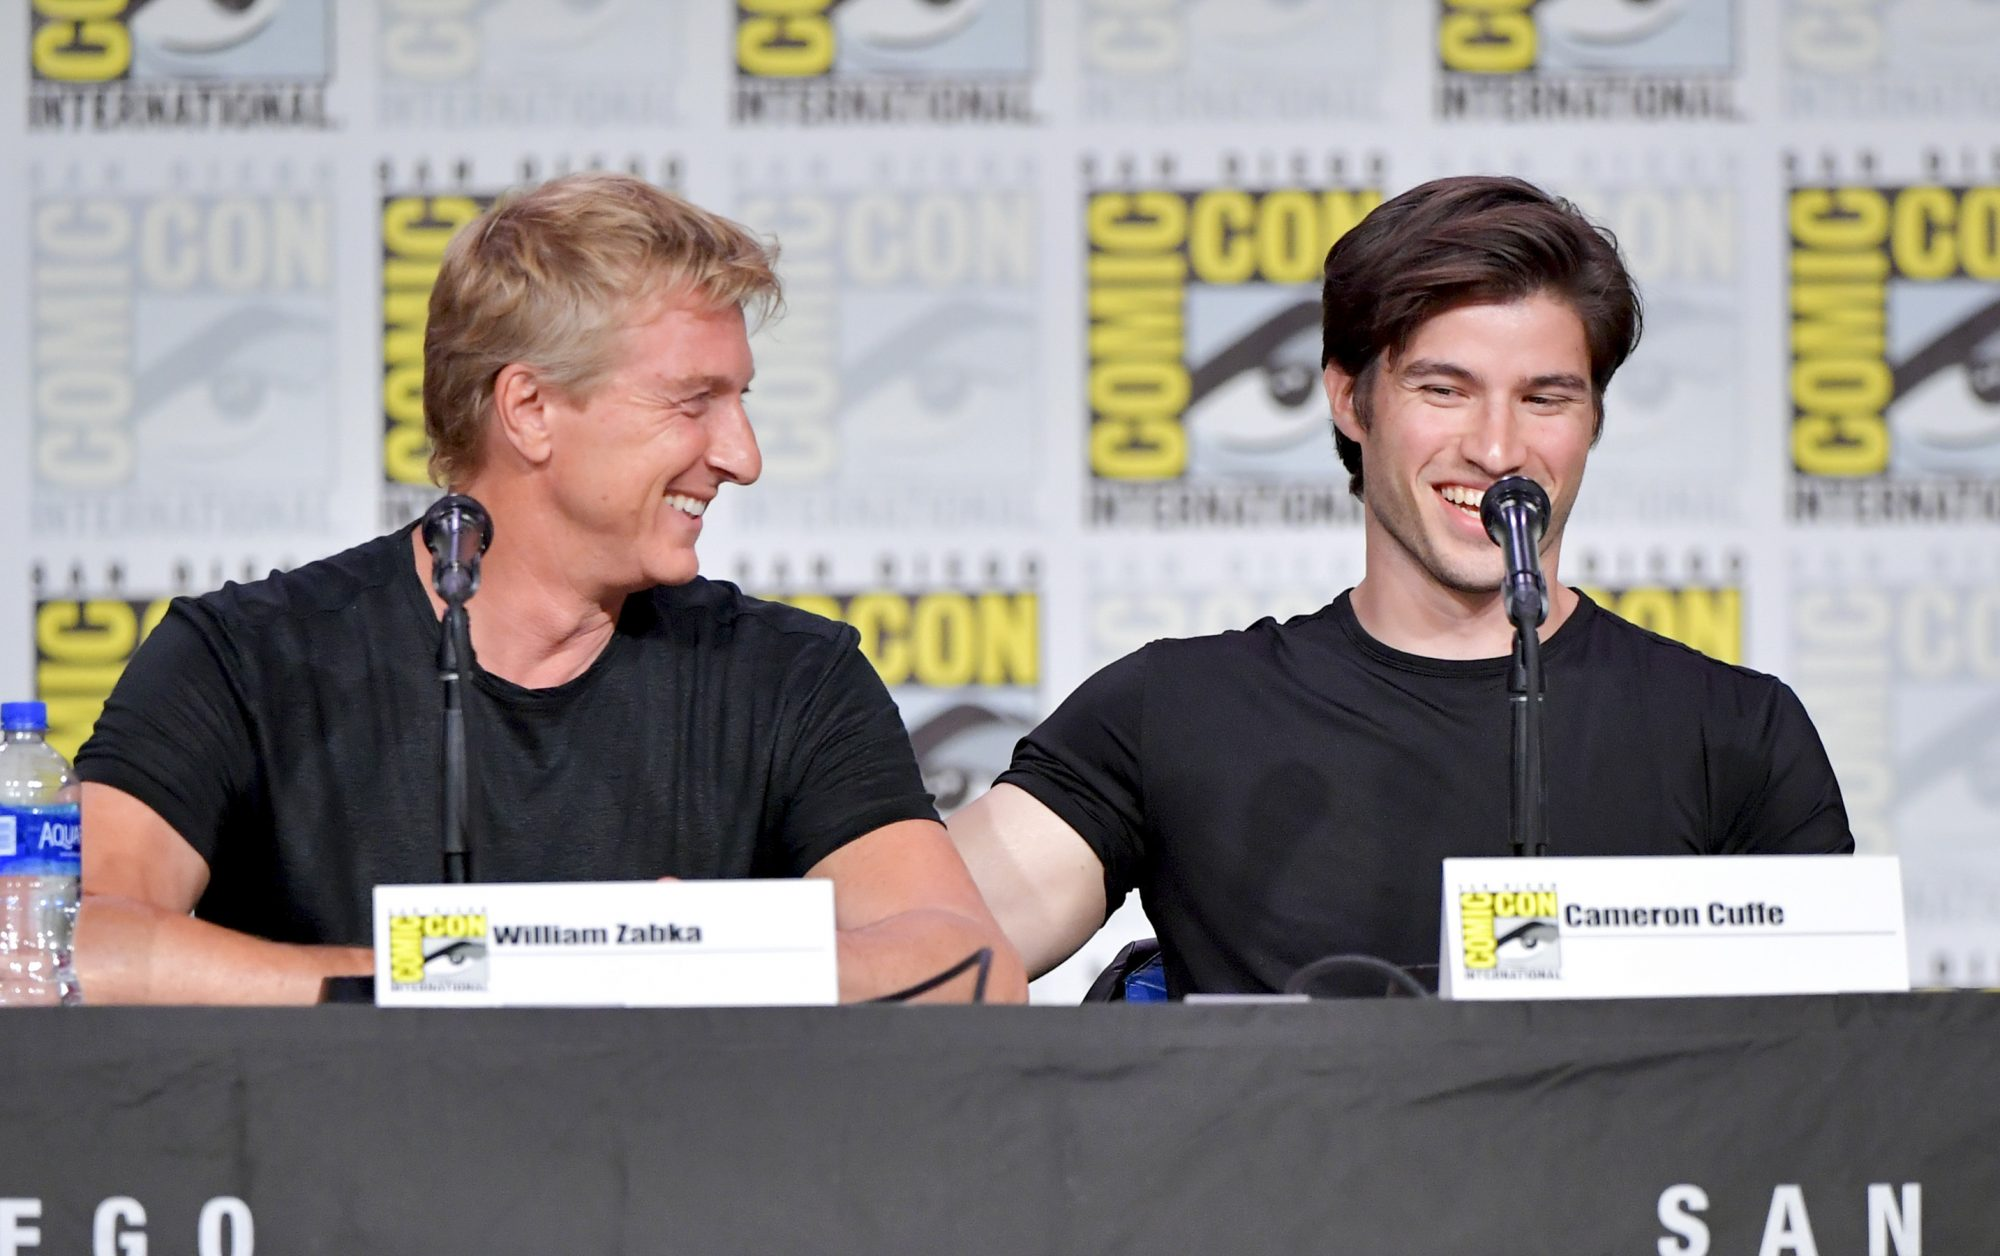 SAN DIEGO, CALIFORNIA - JULY 19: William Zabka and Cameron Cuffe speaks onstage during Entertainment Weekly: Brave Warriors at San Diego Convention Center on July 19, 2019 in San Diego, California. (Photo by Amy Sussman/Getty Images)